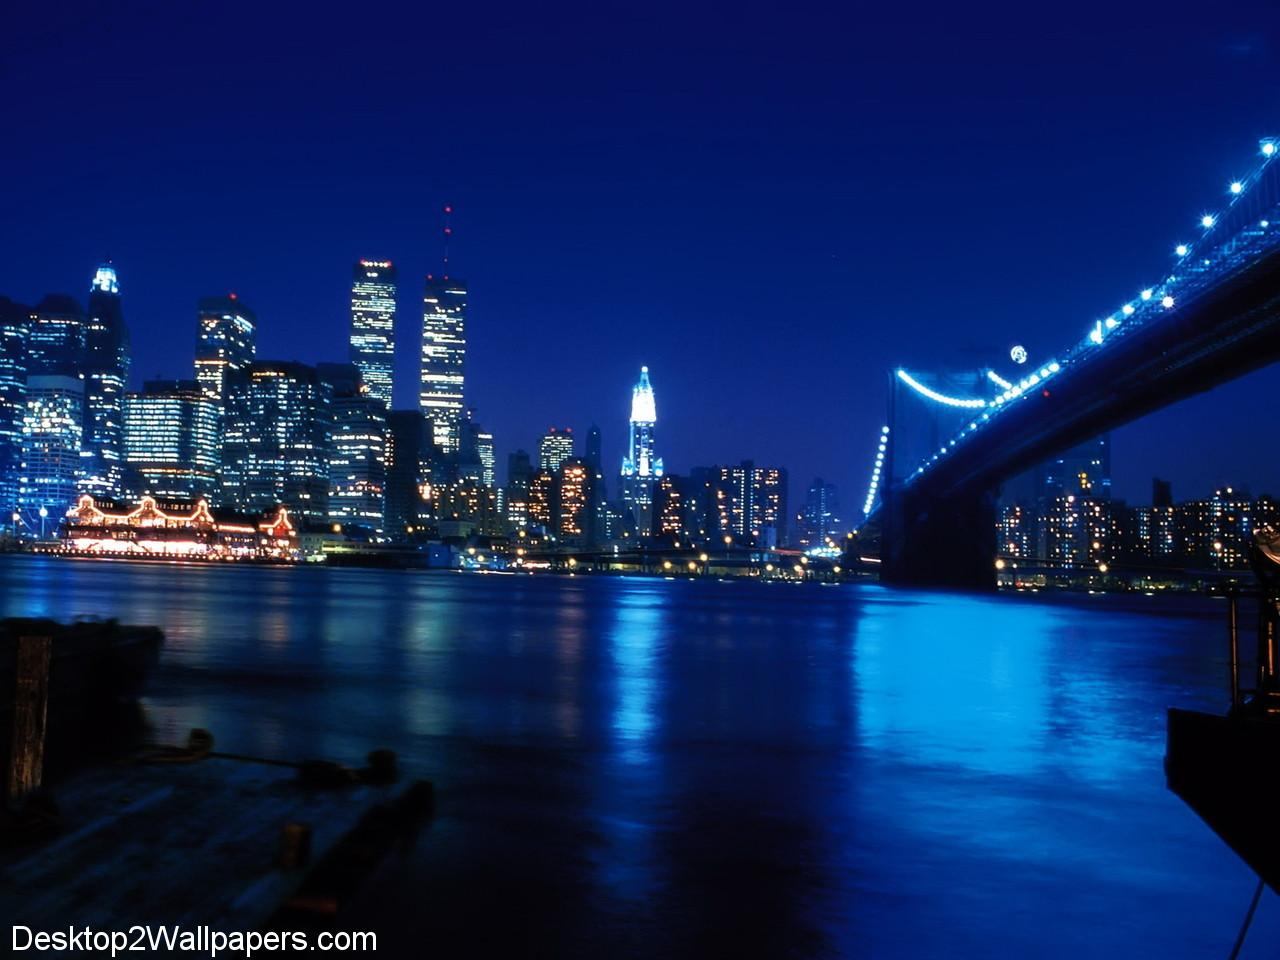 HD wallpaper New York Wallpaper New York Hd Desktop Wallpapers 1280x960